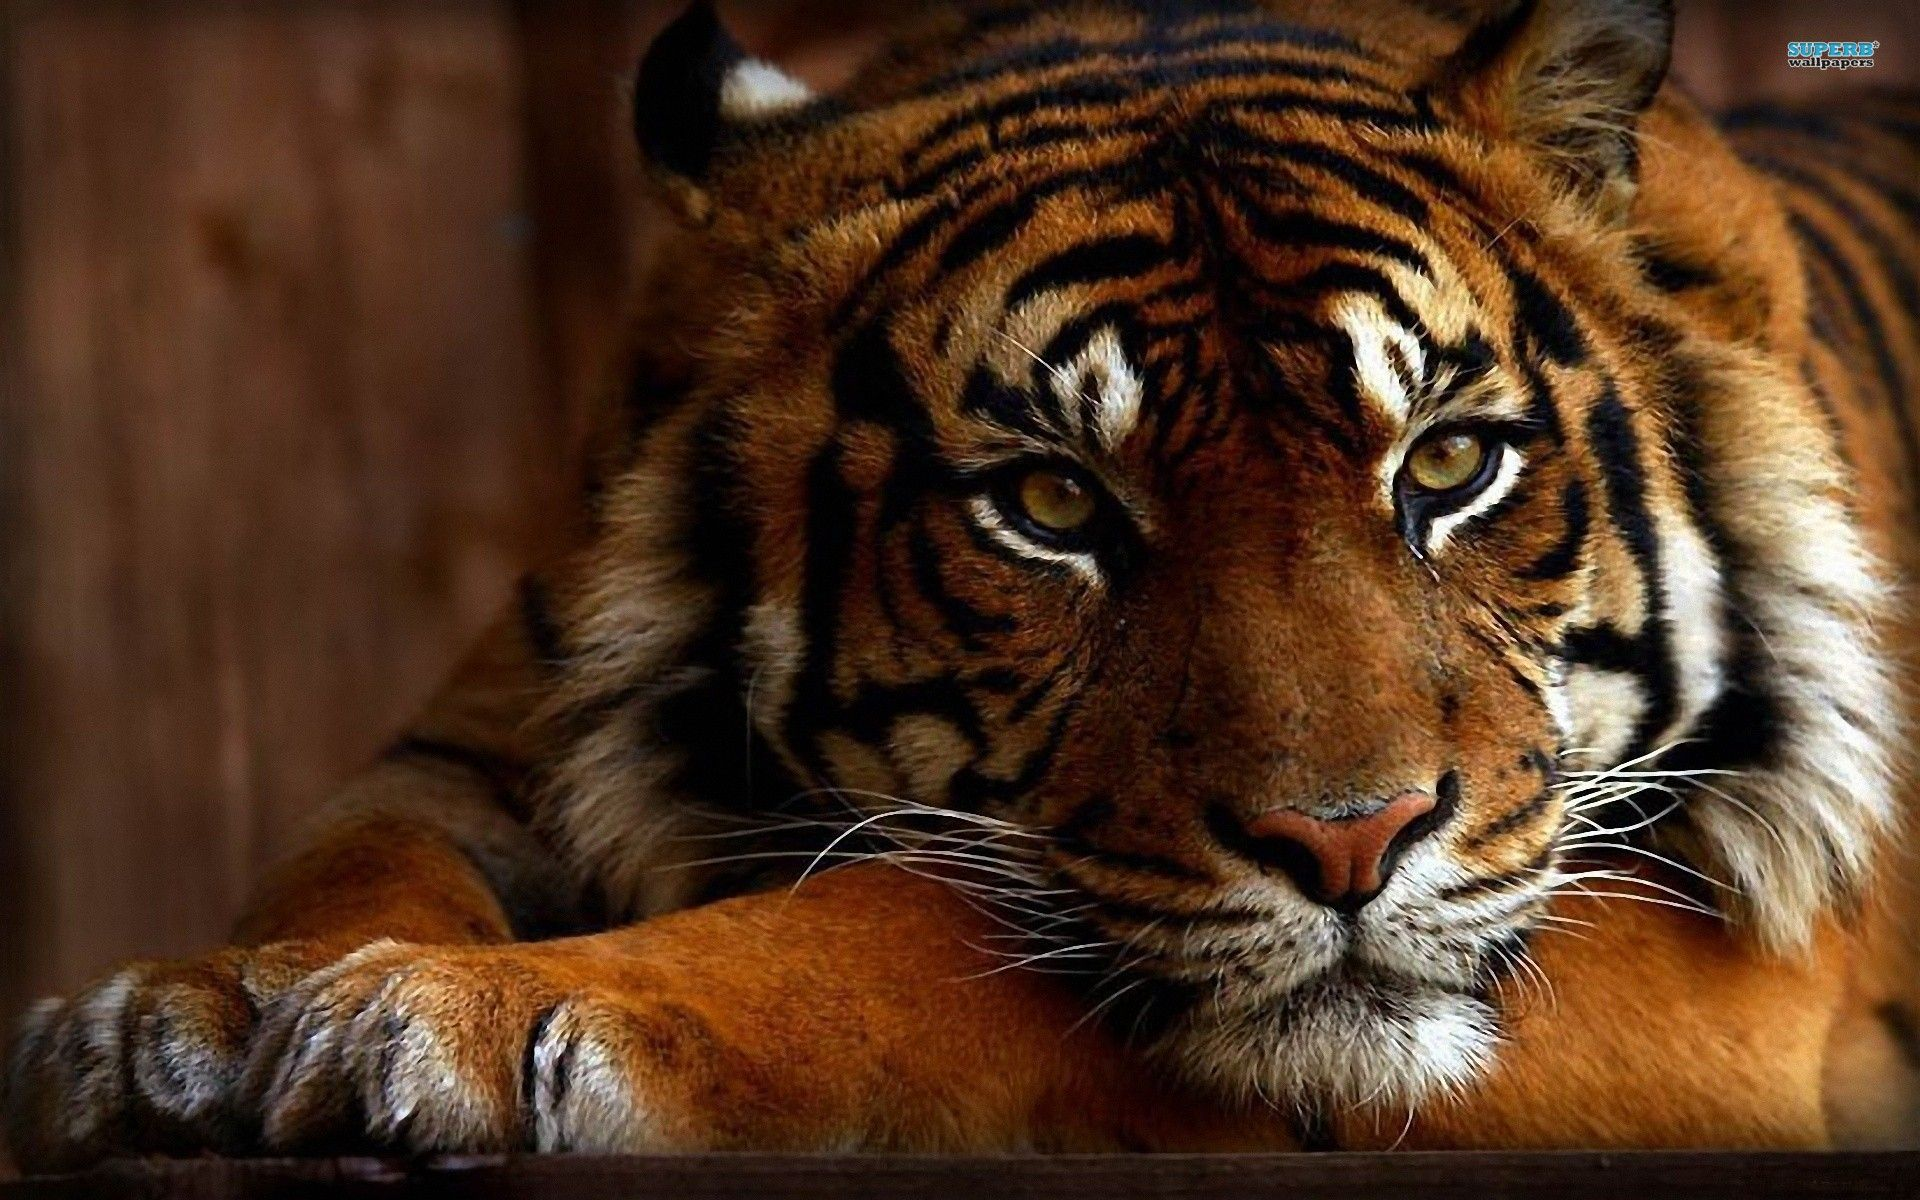 flowers and wild animals | if you like wild animals and cats you